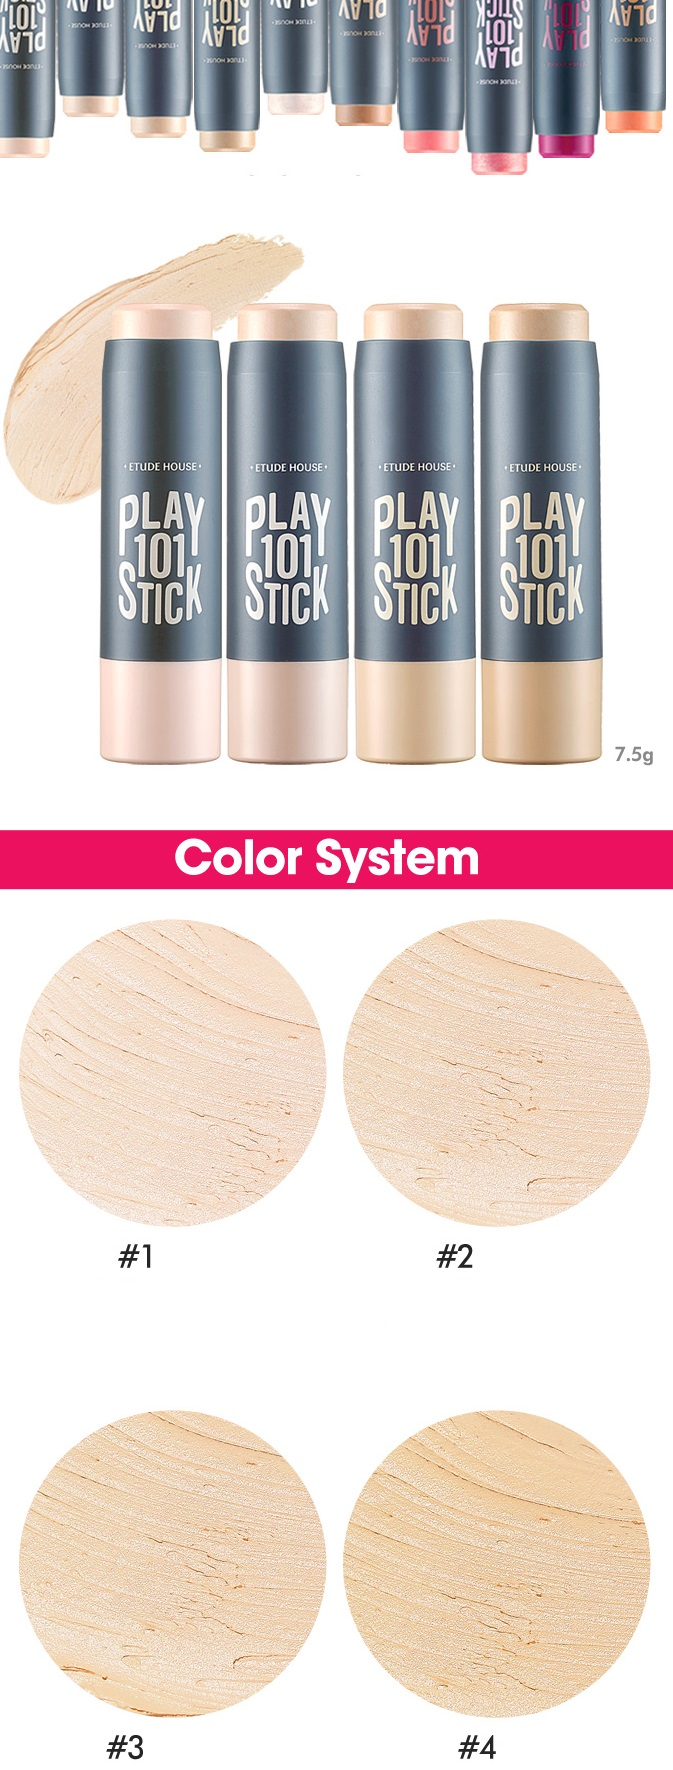 ETUDE HOUSE Play 101 Stick Foundation (4 Colors)